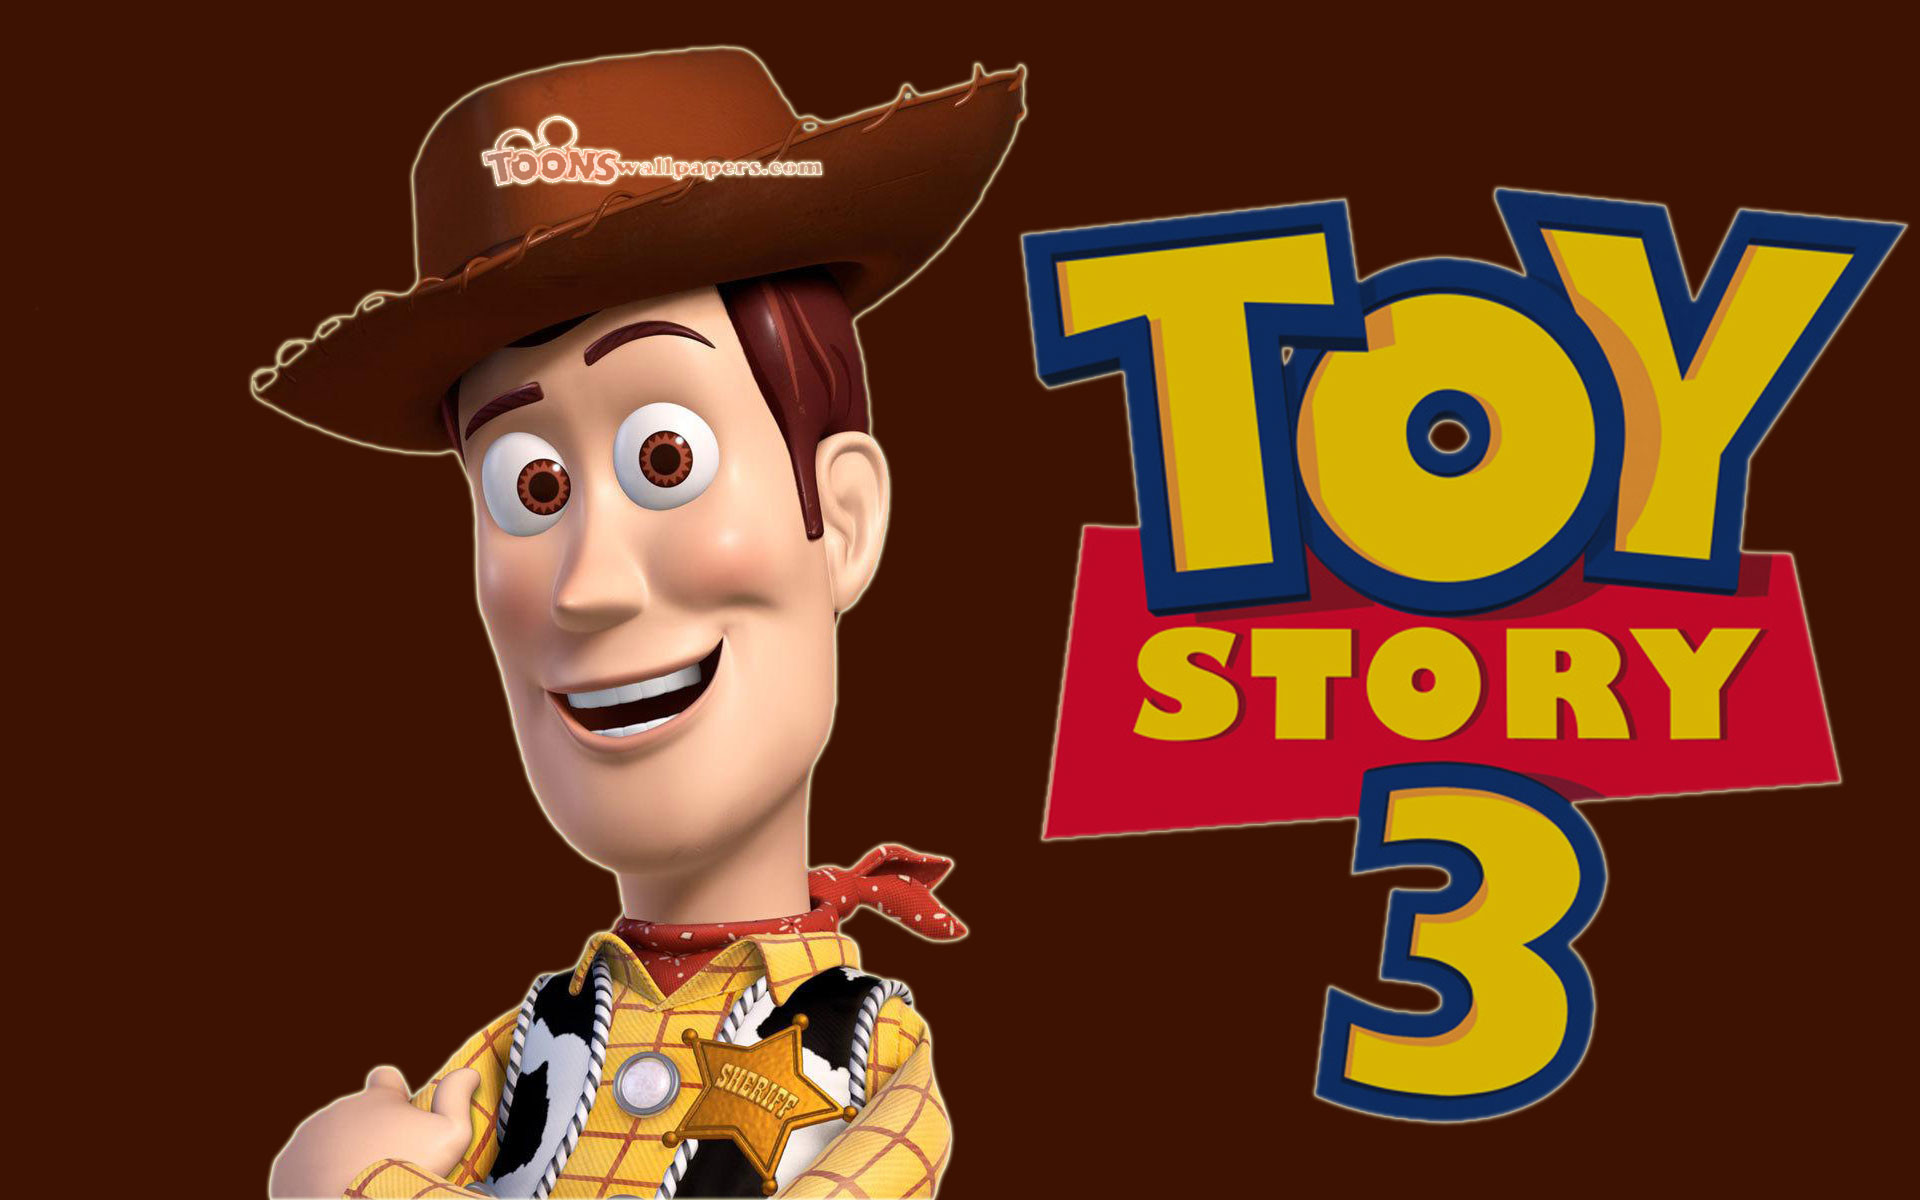 1920x1200 Cartoons Wallpapers - Toy Story 3 - Woody Brown  wallpaper